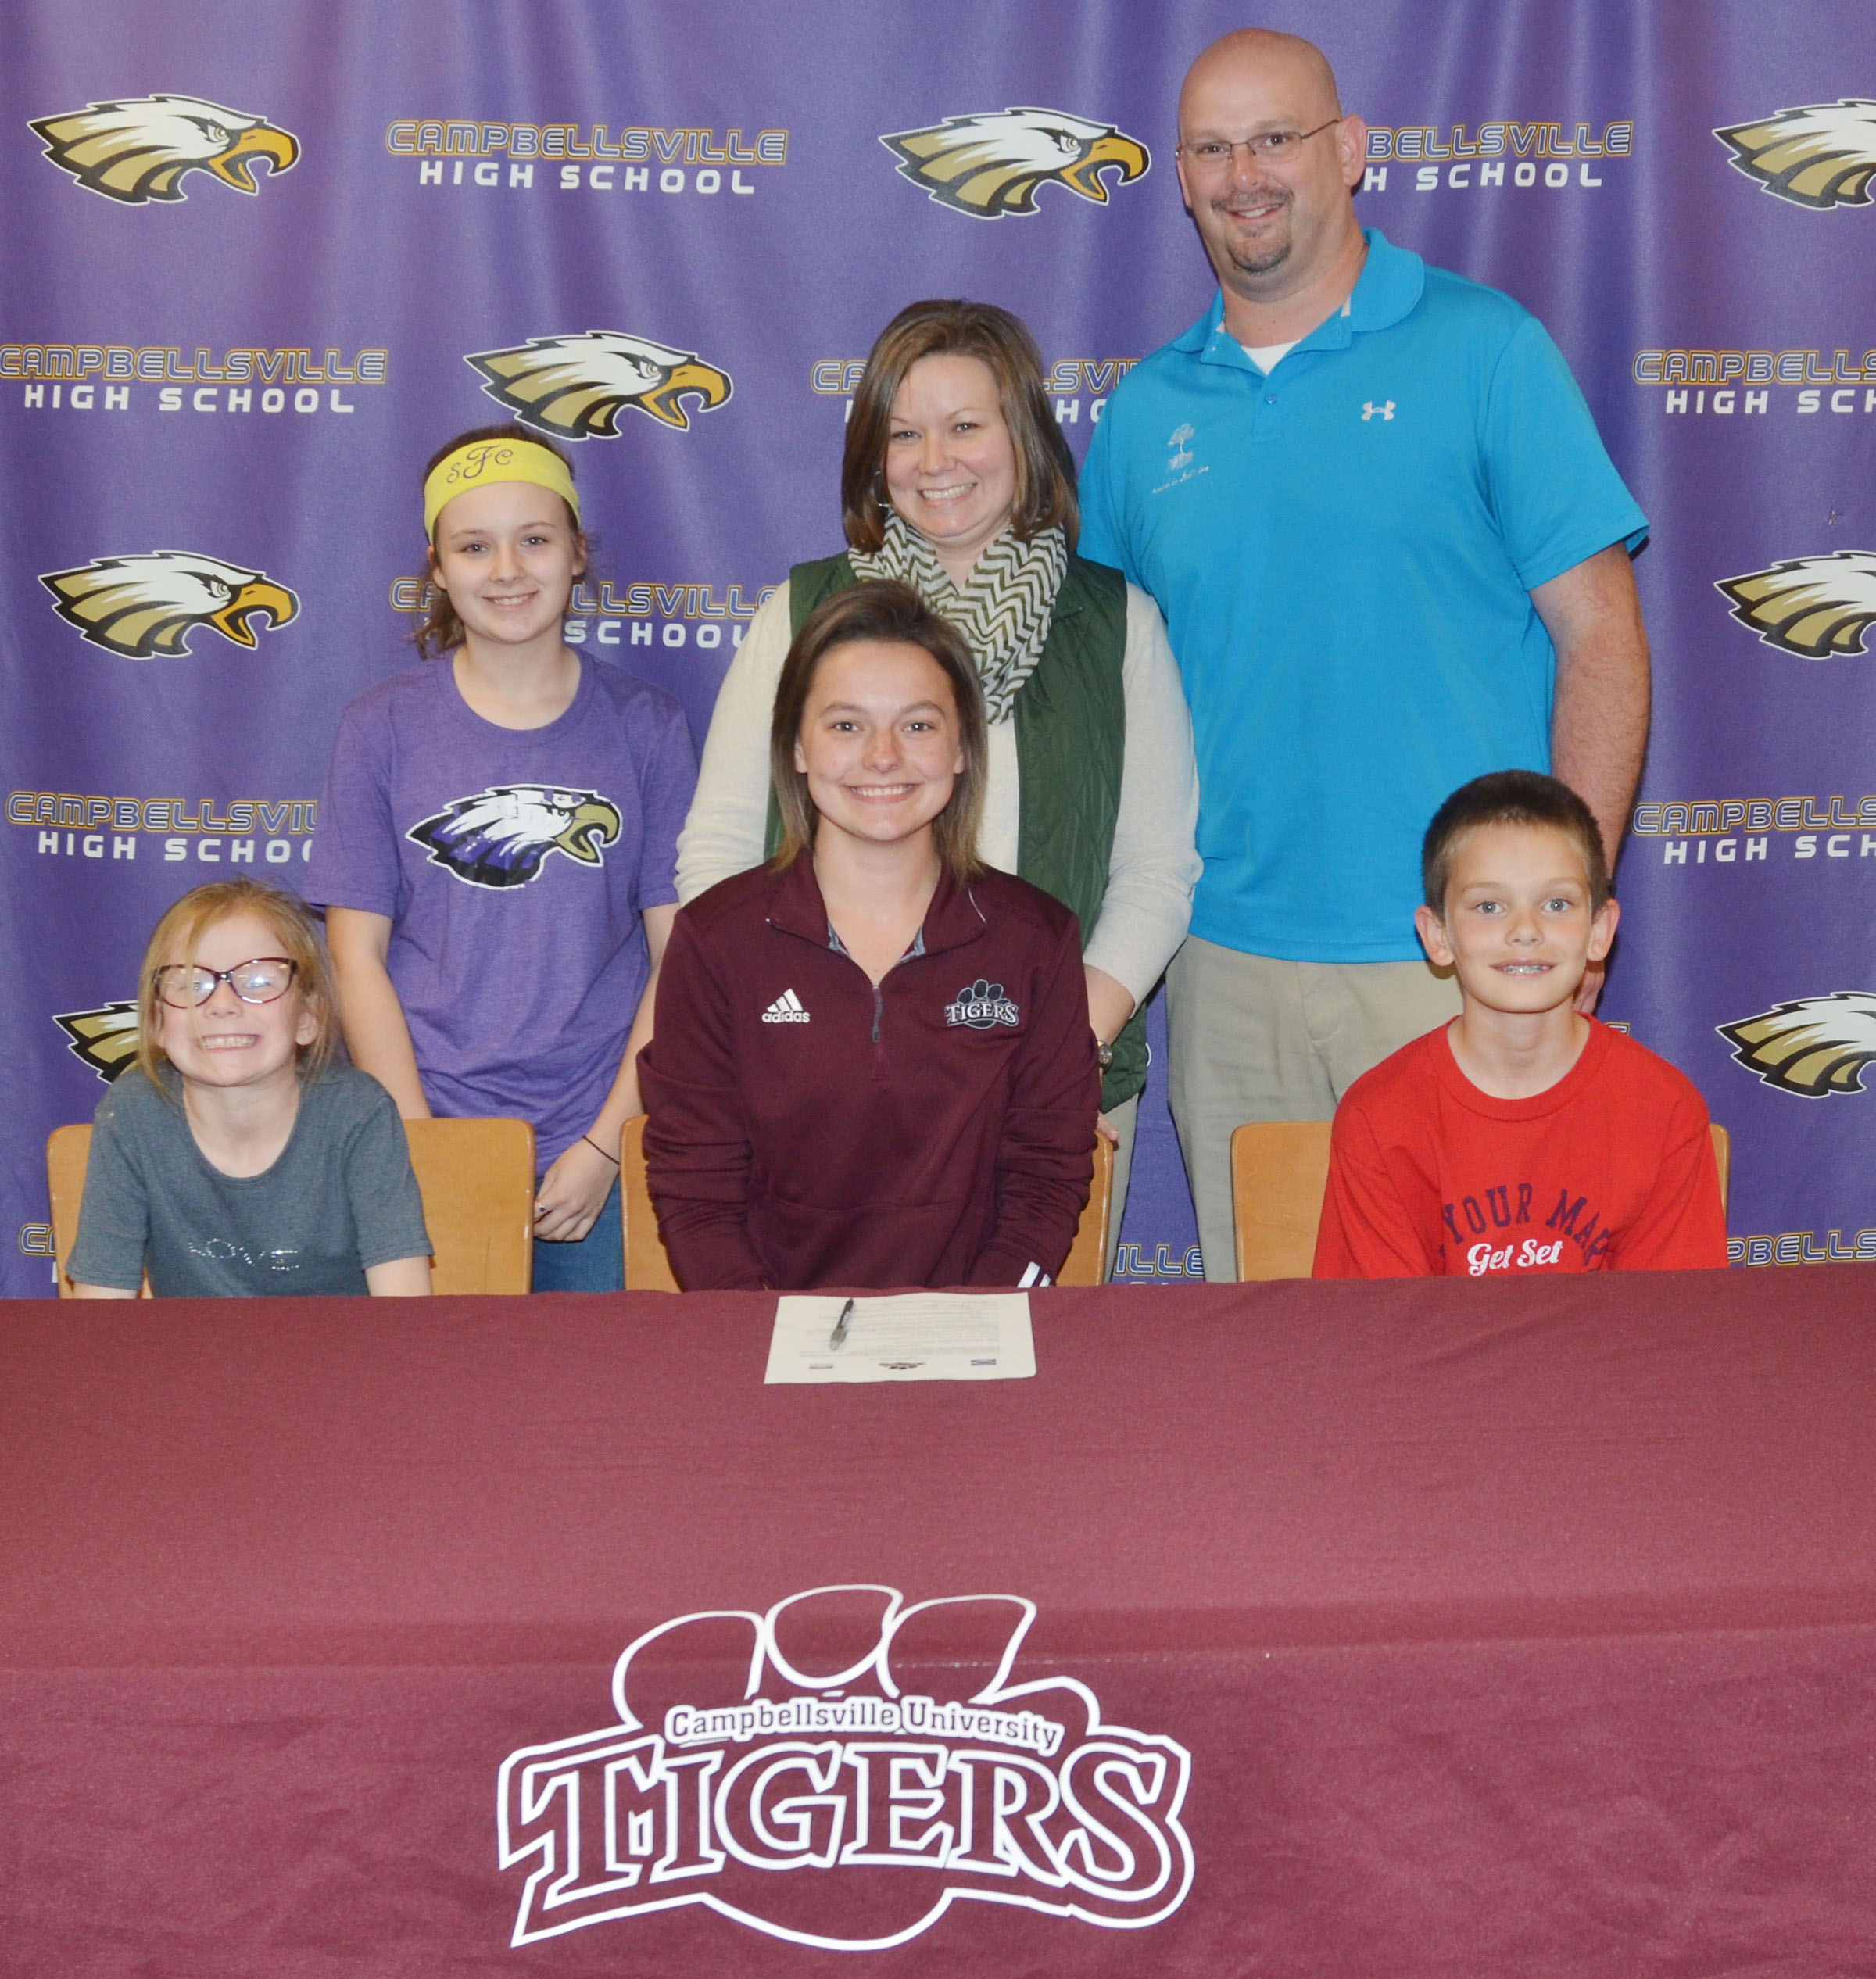 Campbellsville High School senior Kyrsten Hill will continue her academic and tennis career at Campbellsville University this fall. She recently signed her letter of intent in a special ceremony with her family, friends, teammates and coaches. Hill is pictured with her aunt and uncle, Kari and Rodney Booe, and their children, from left, Lizzie Booe, Campbellsville Middle School seventh-grader Serenity Ford and Grayson Booe.